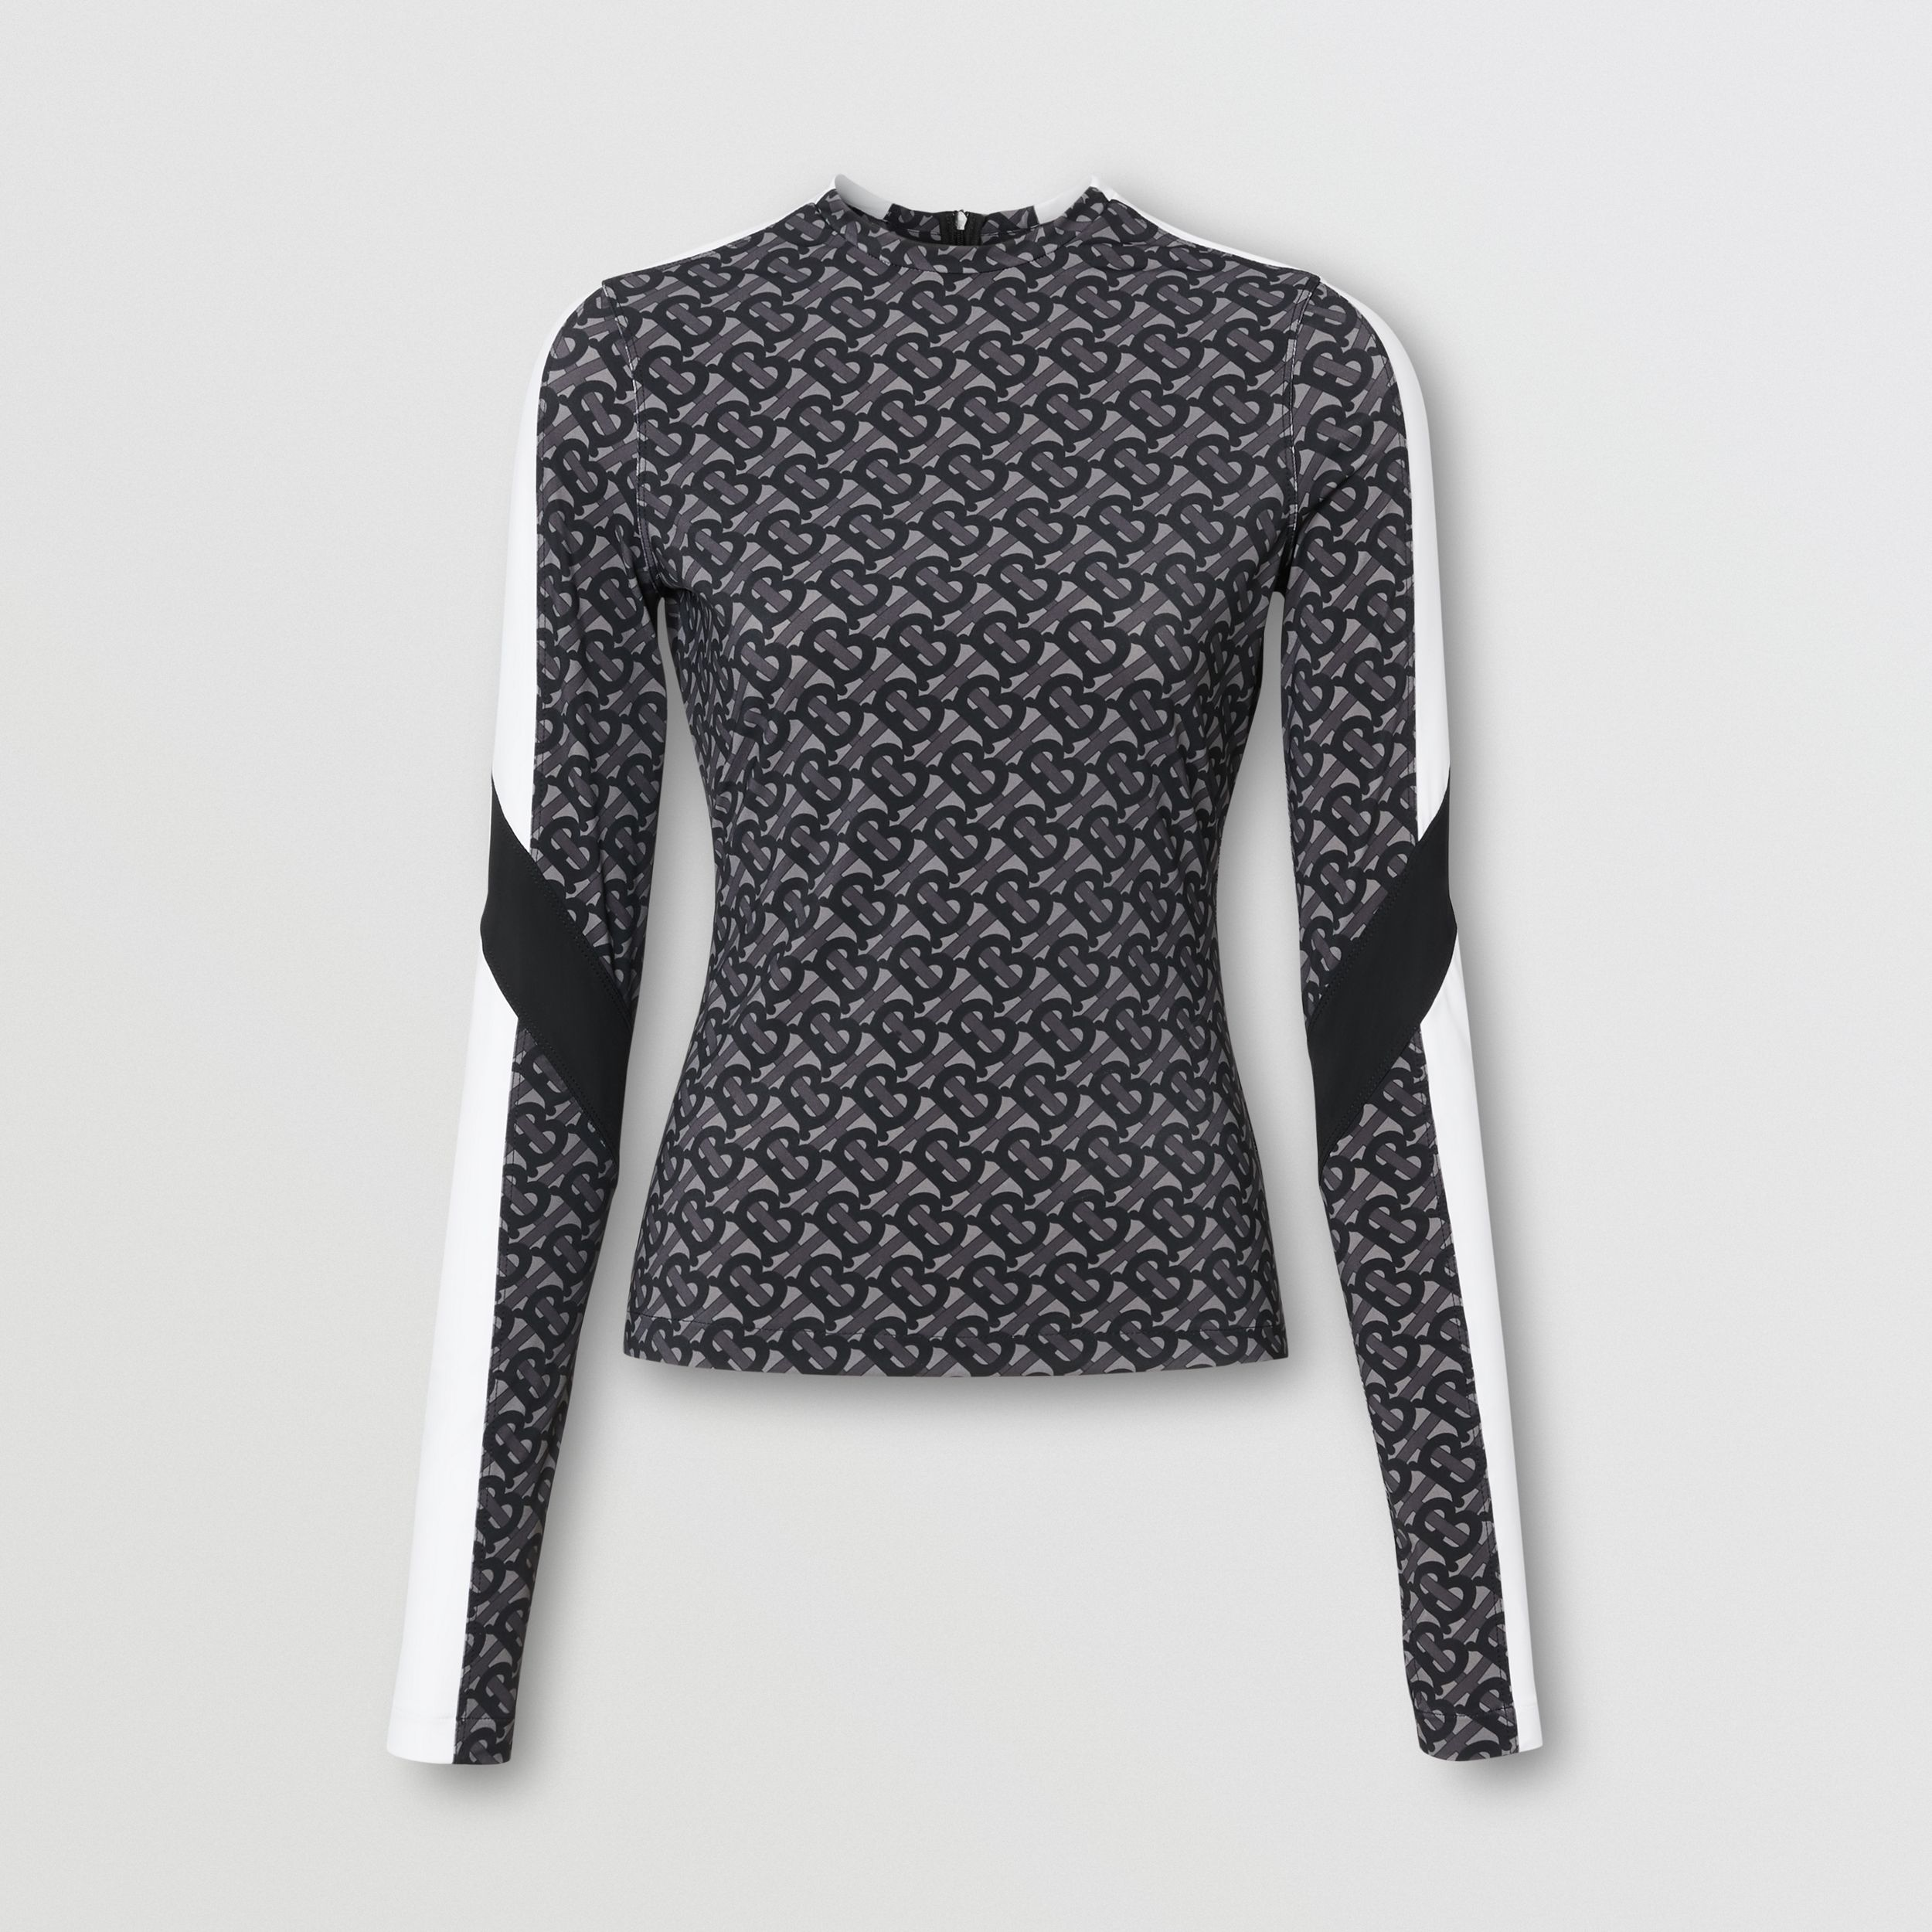 Colour Block Monogram Print Stretch Jersey Top in Graphite - Women | Burberry United Kingdom - 4